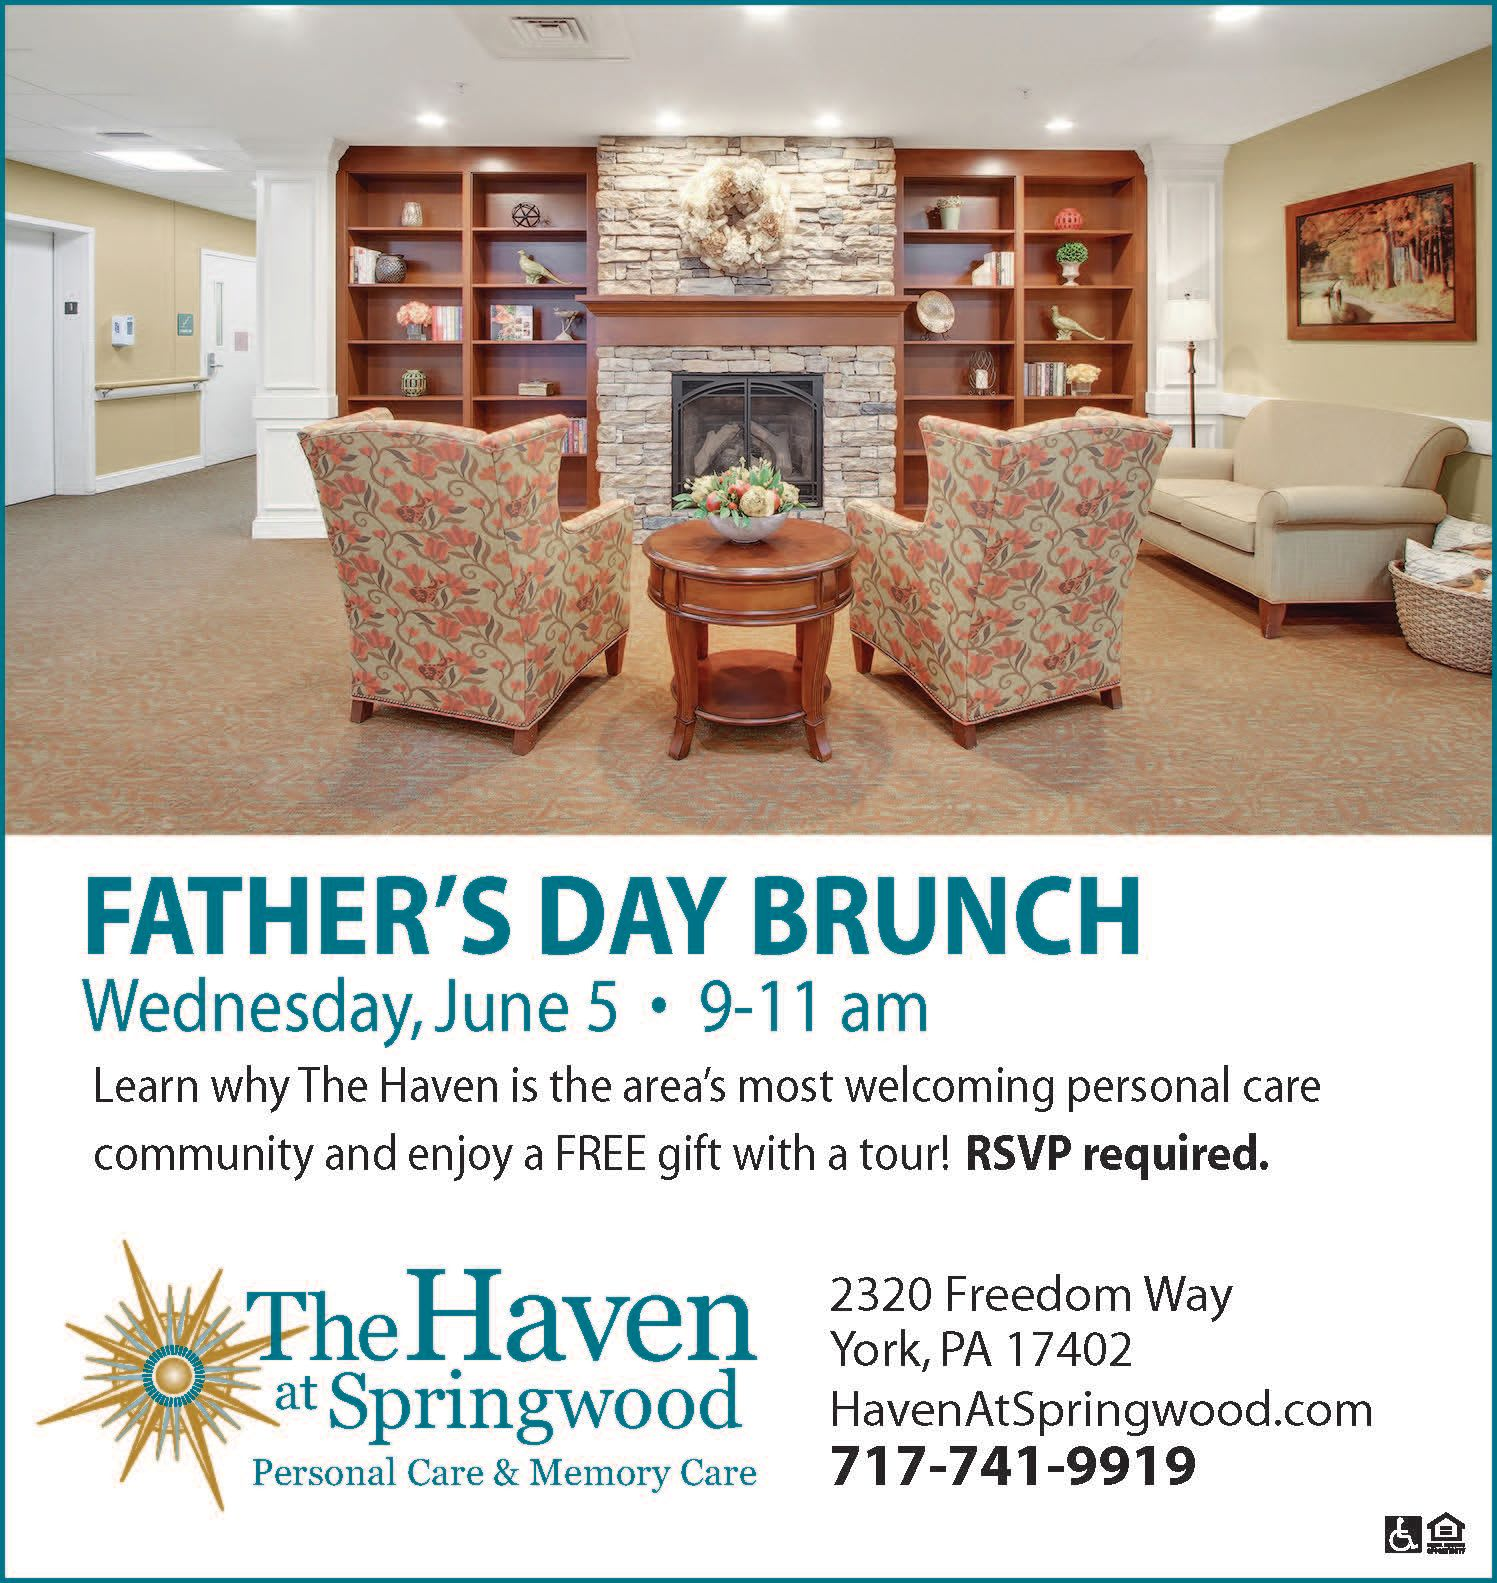 Fathers day brunch at The Haven at Springwood in York, Pennsylvania